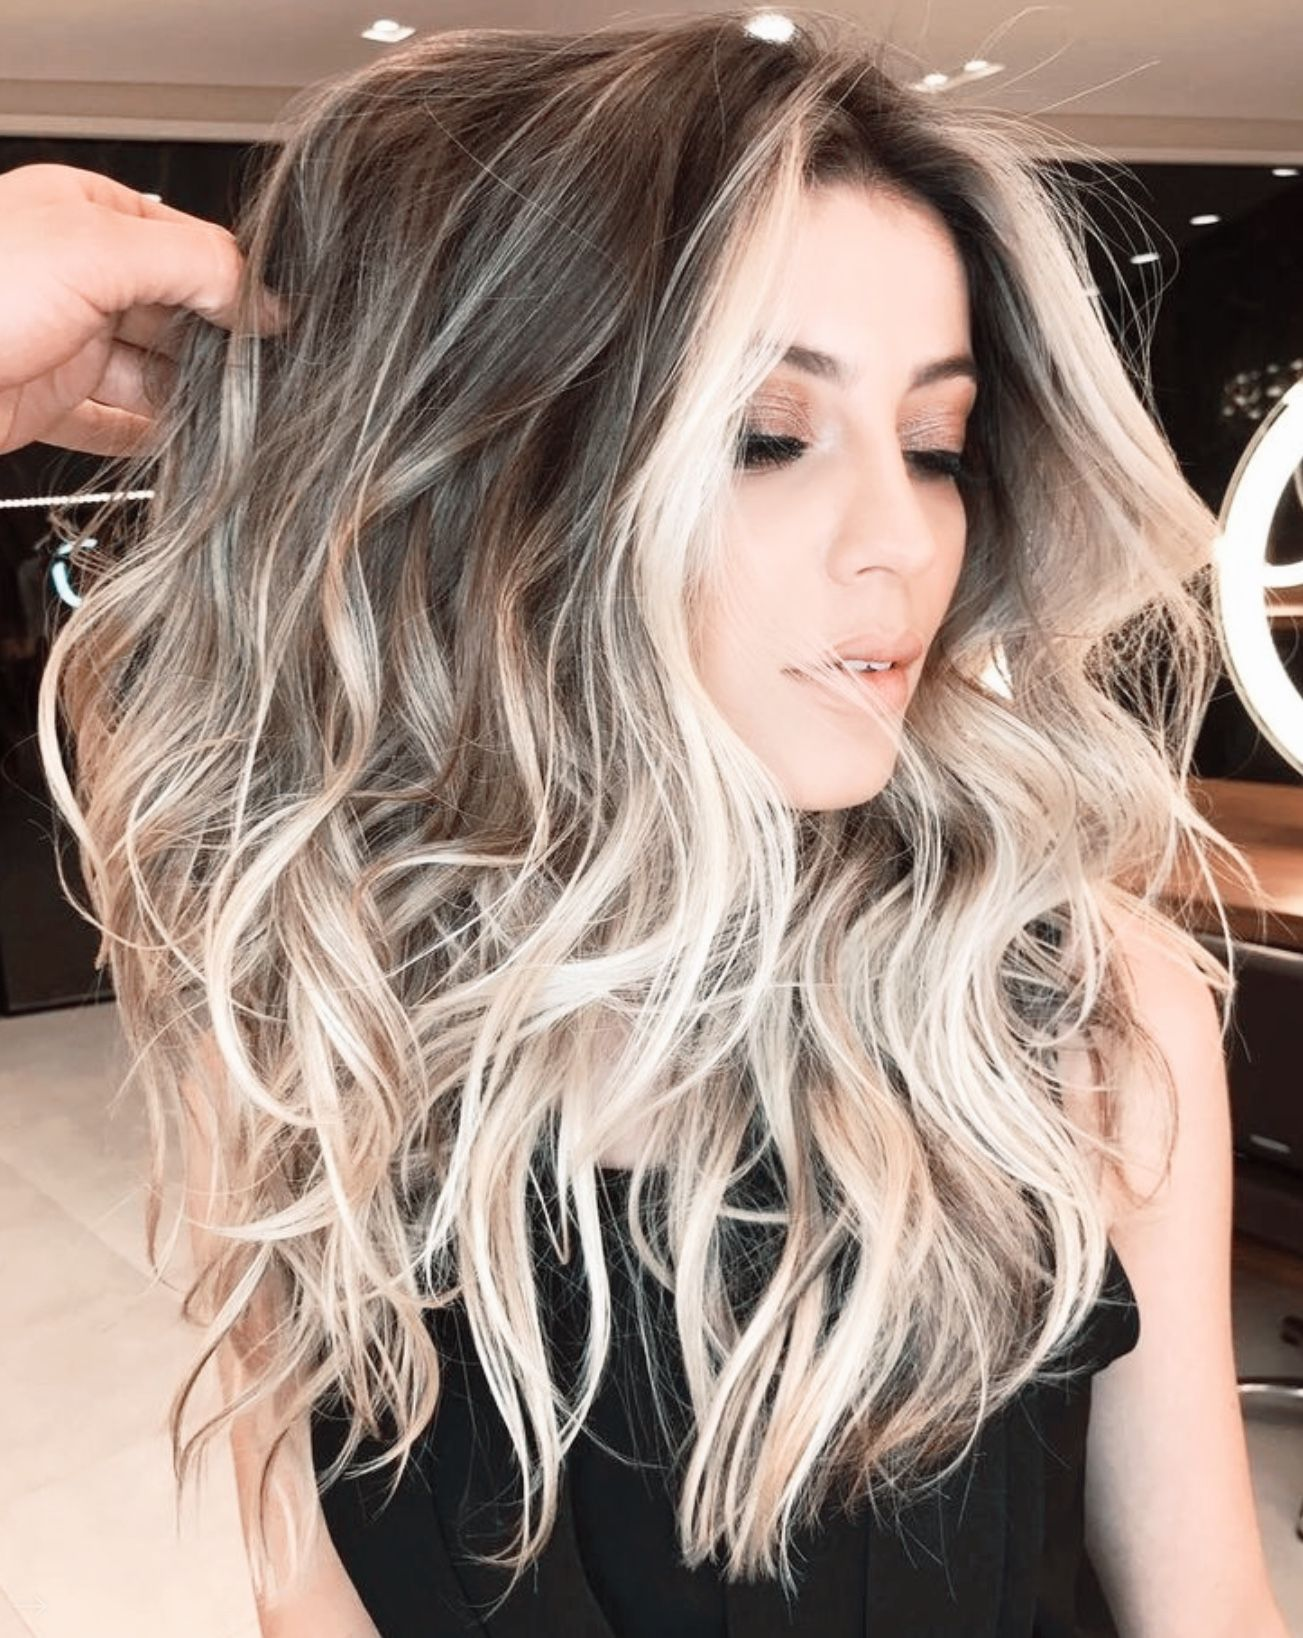 10 Marvelous Useful Tips Women Hairstyles Curly Long Bun Hairstyles How To Women Hairstyles 2018 Medium Boho Hair Balayage Hair Hair Styles Medium Hair Styles